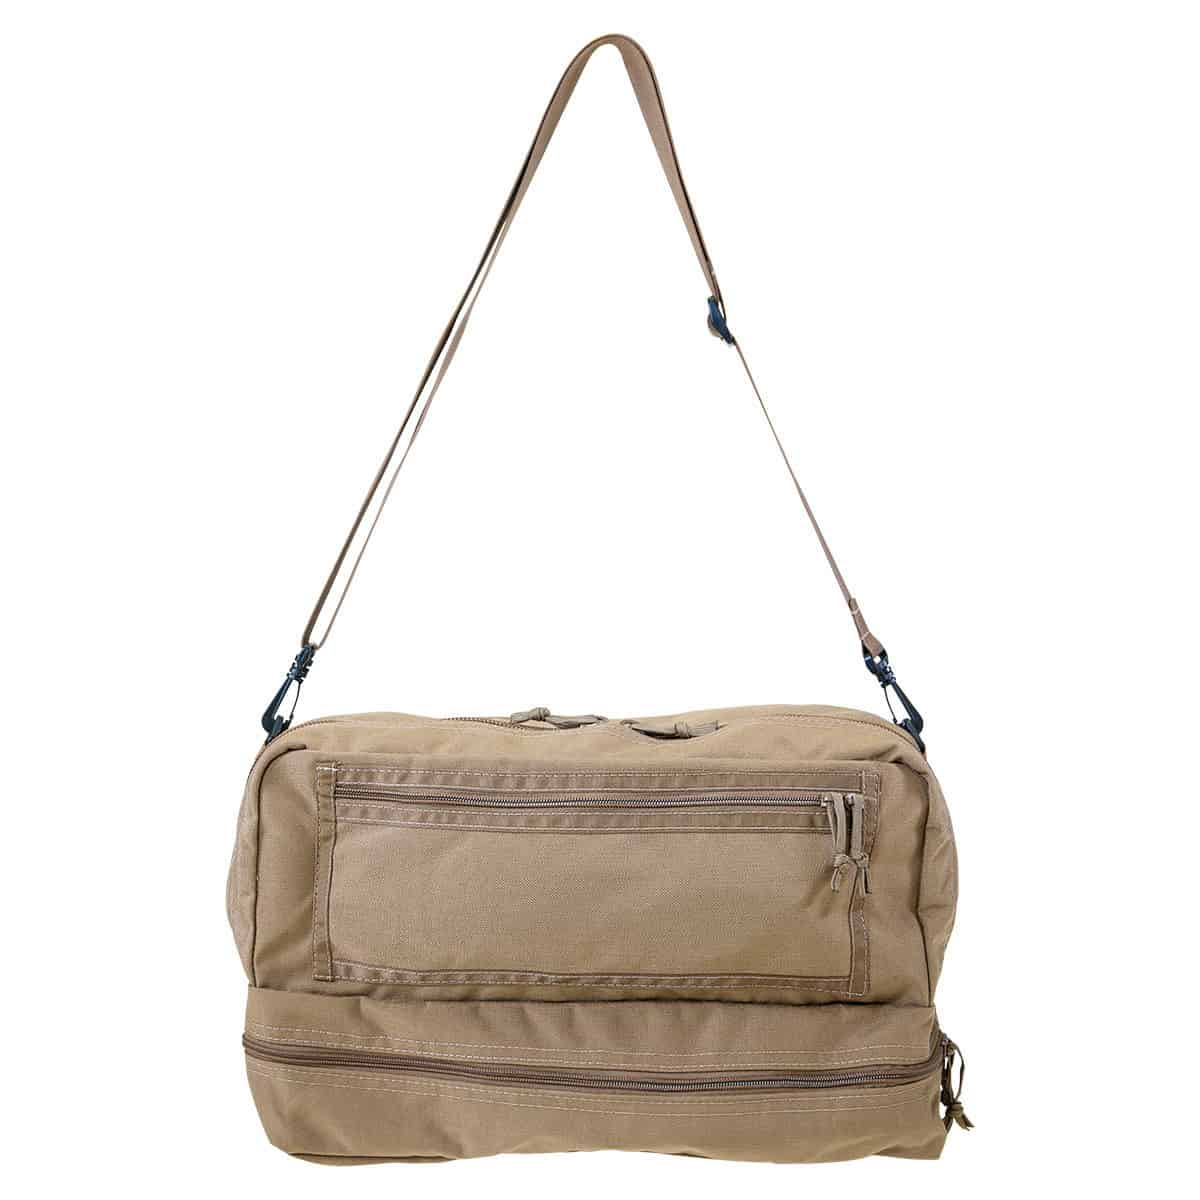 mojo combat life saver bag closed front with strap coyote brown